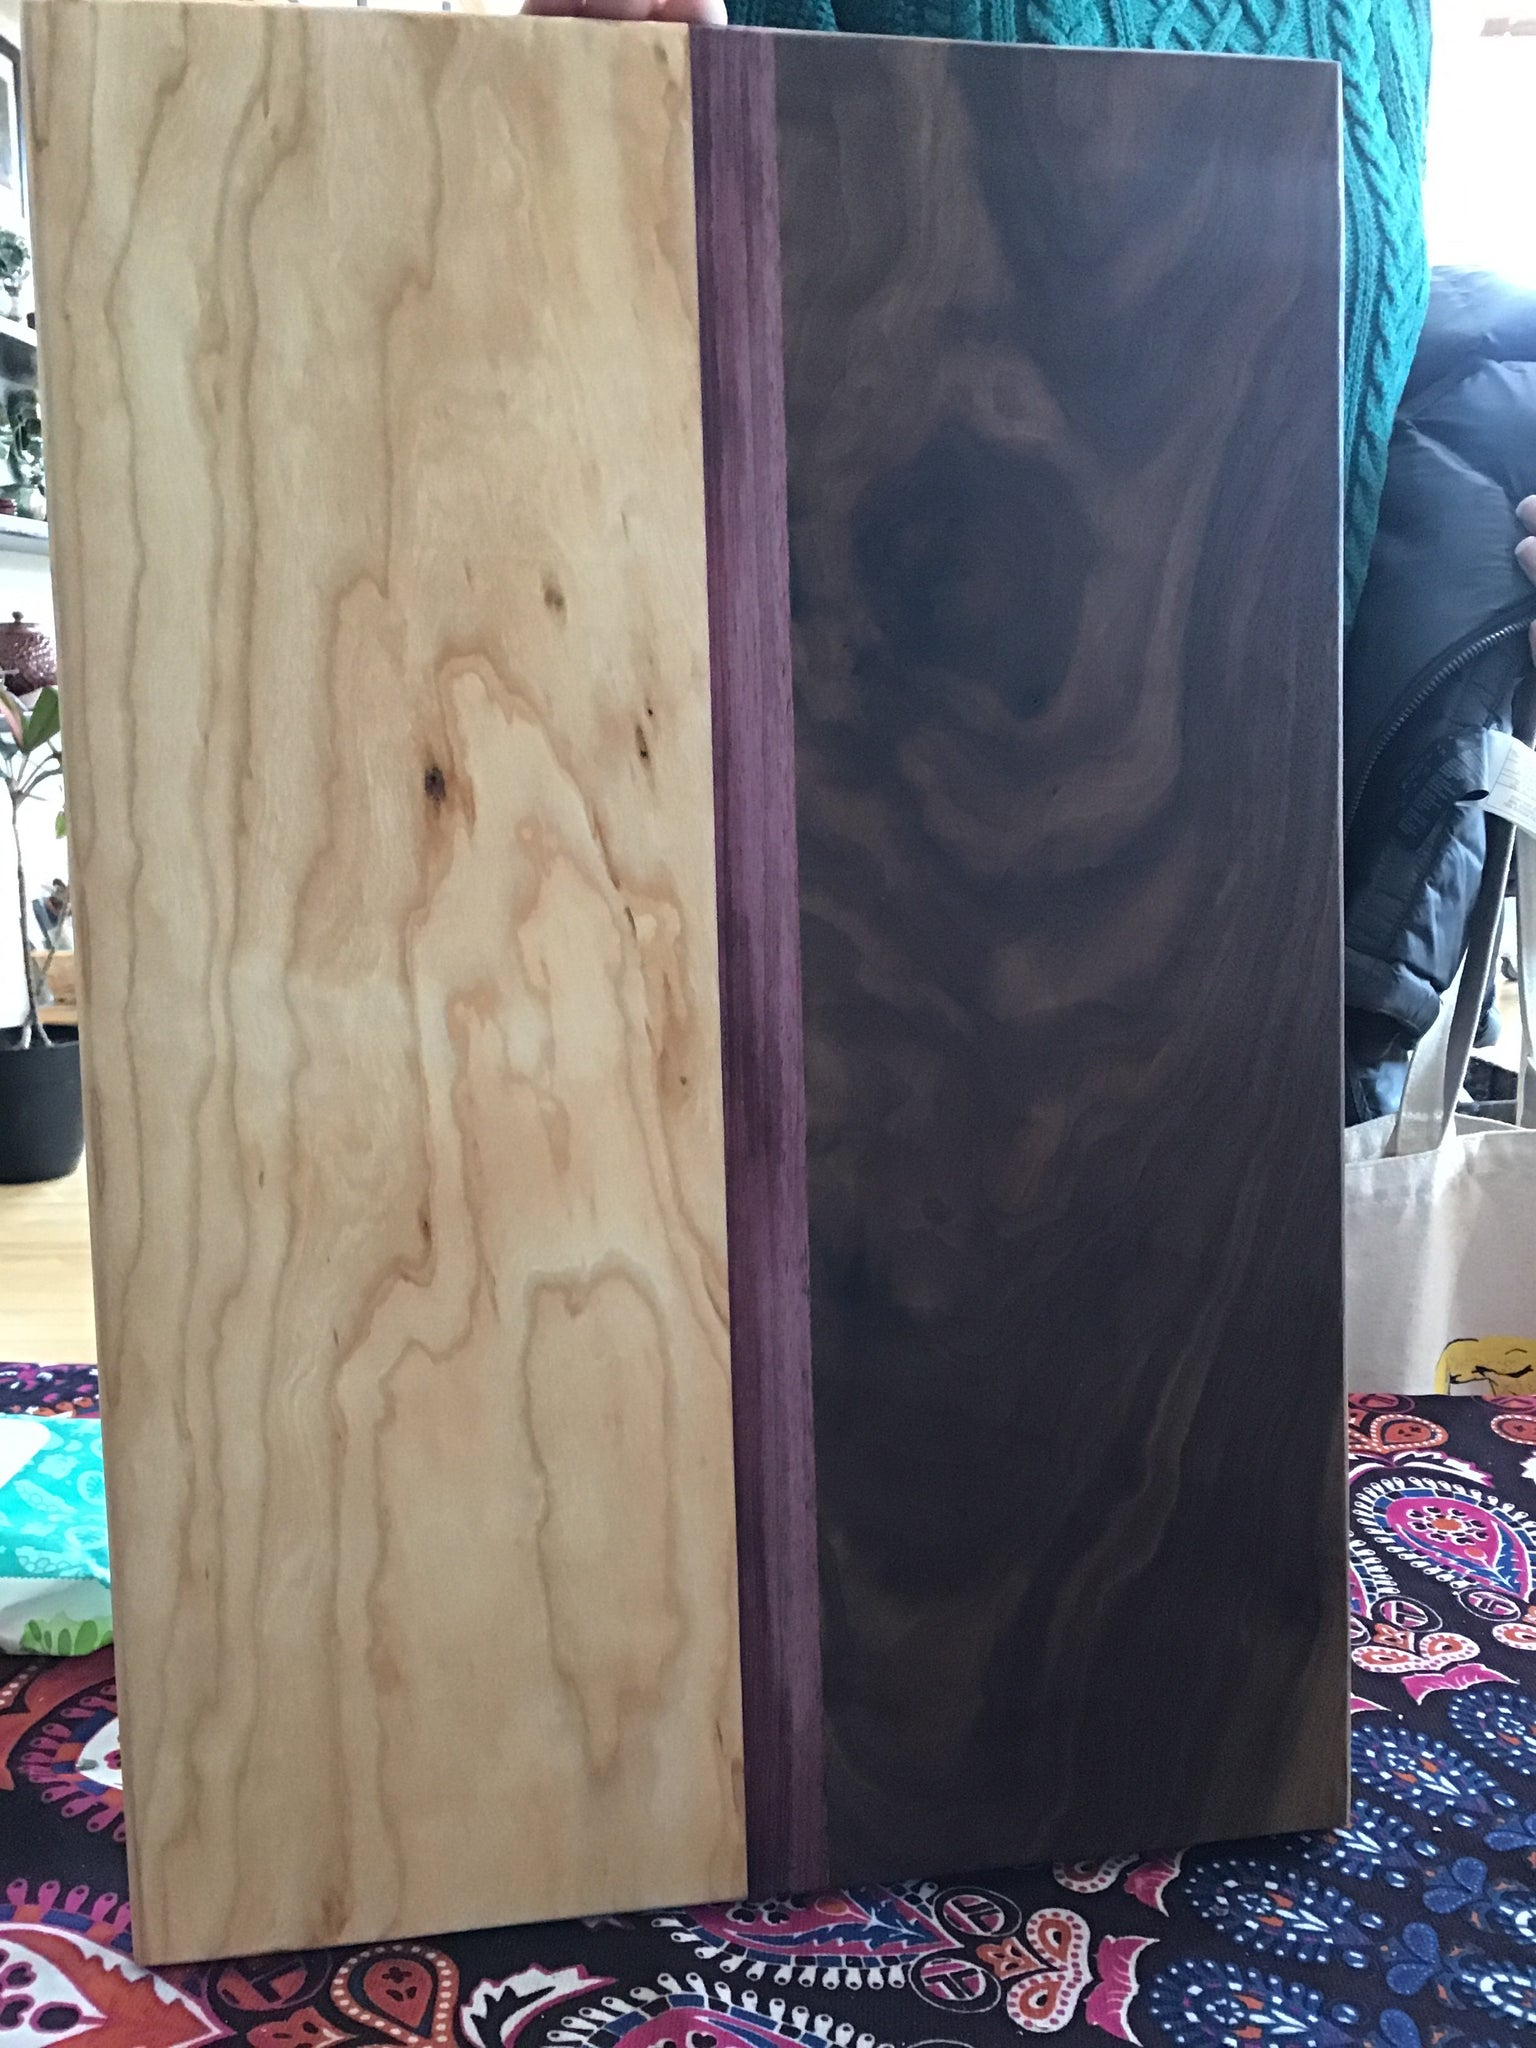 Timber Fusion Board- Black Walnut, Cherry, Padauk